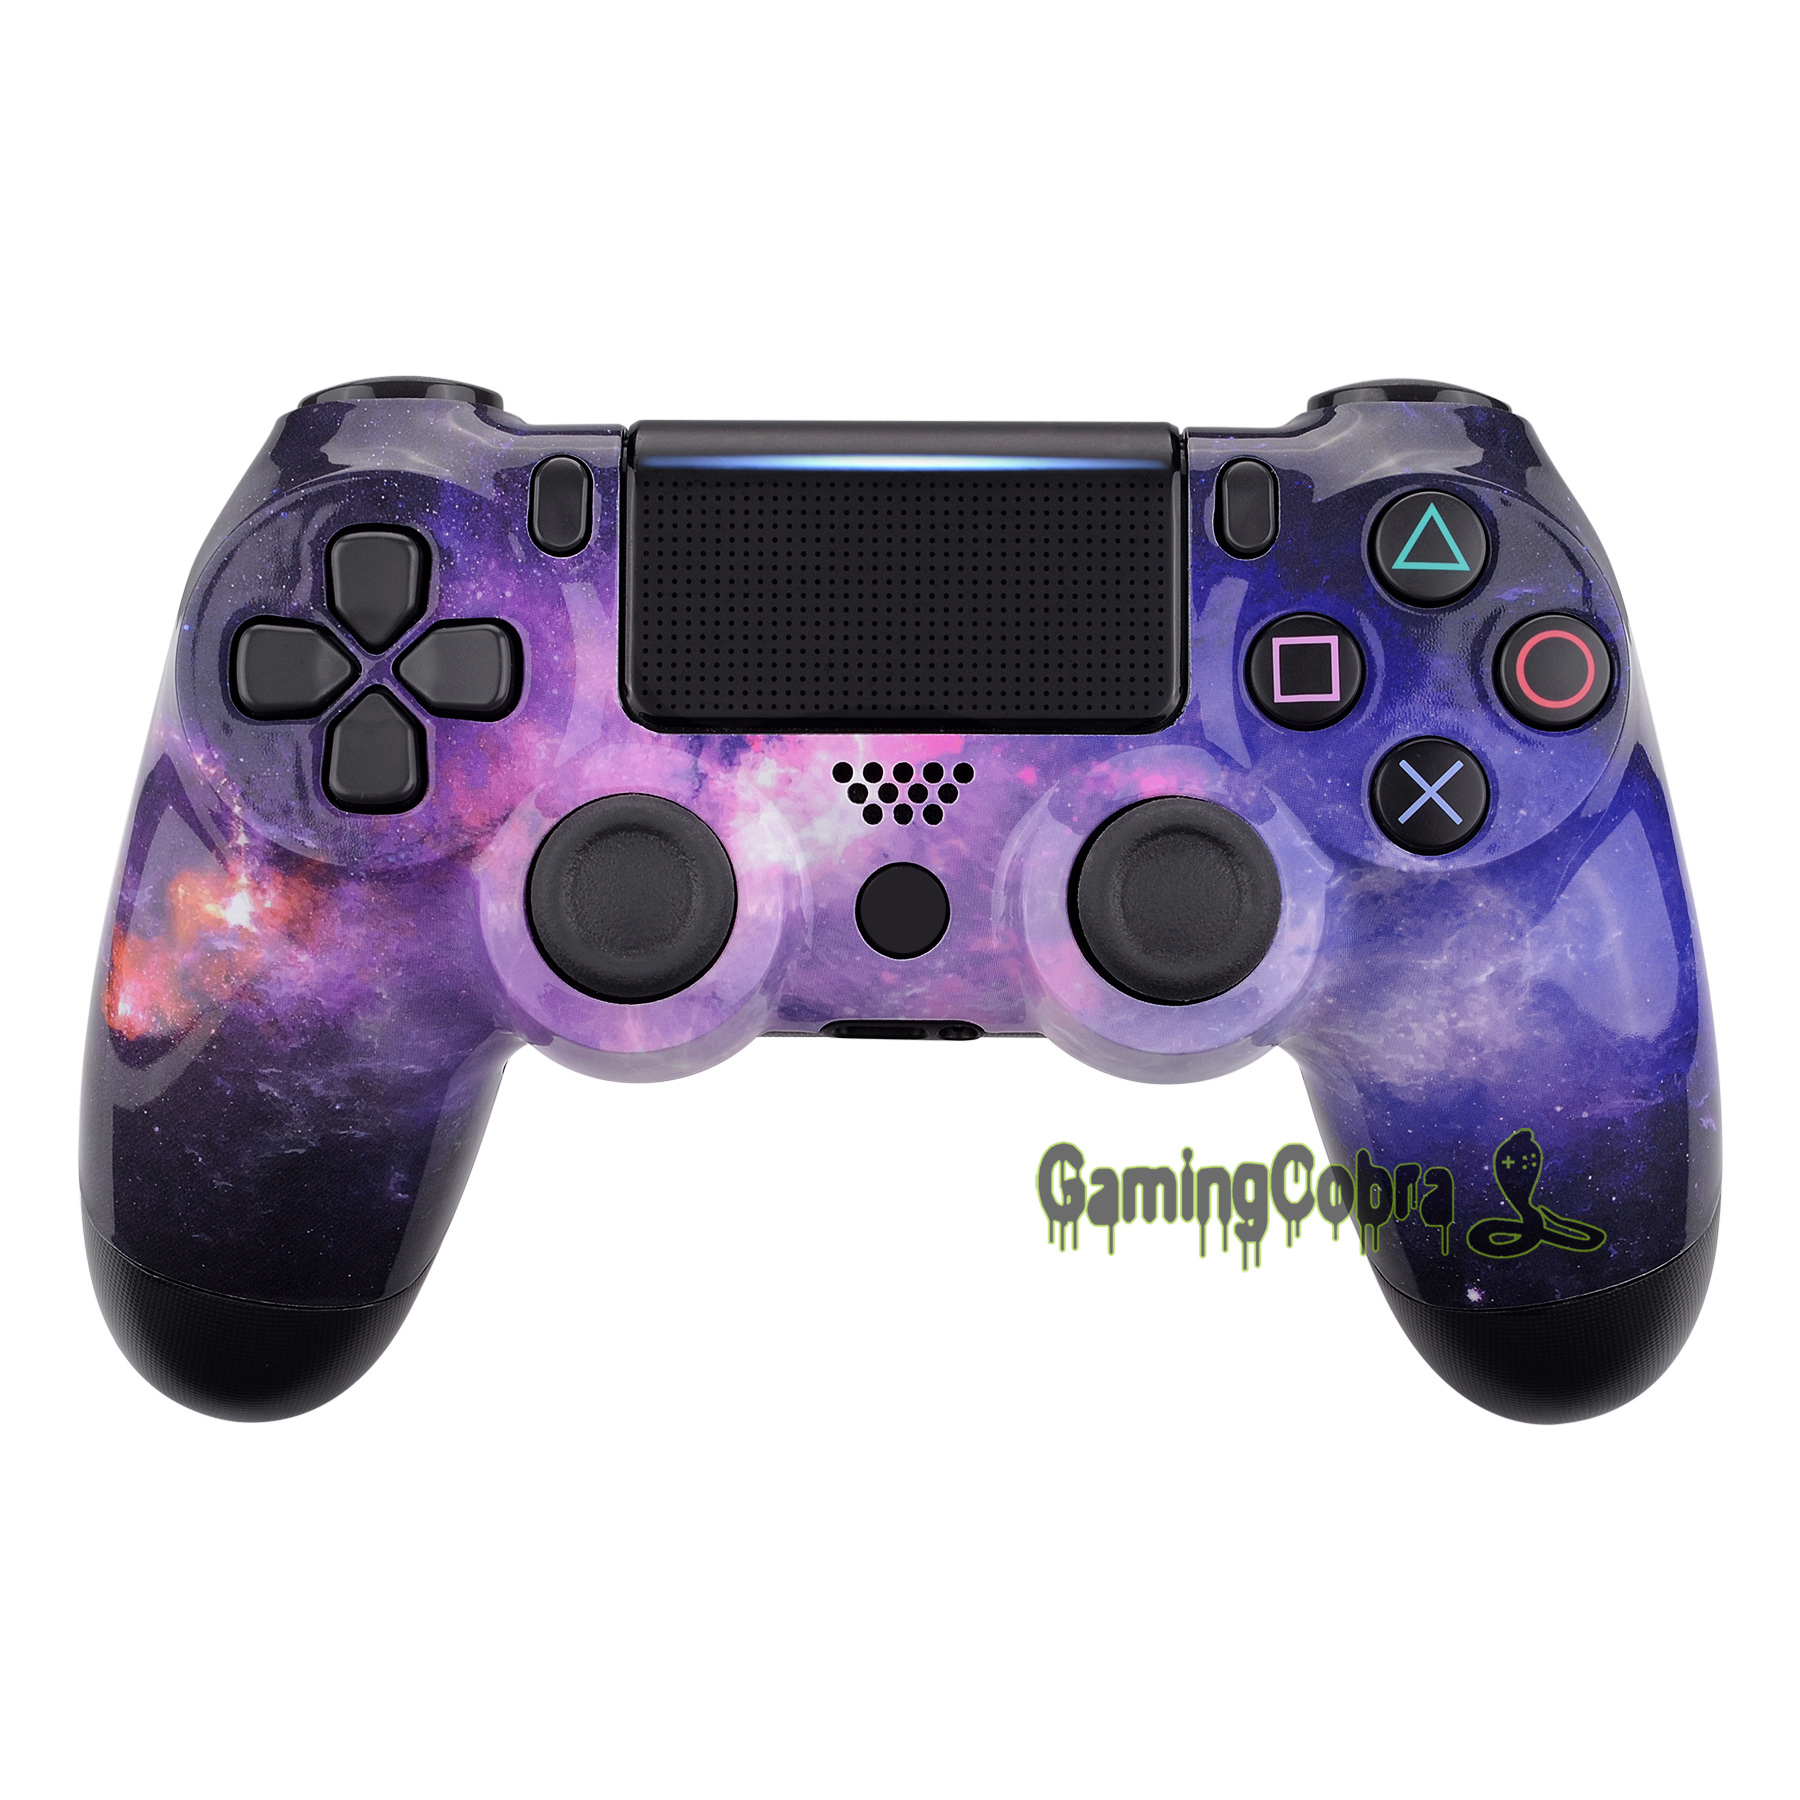 Nubula Galaxy Design Replacement Front <font><b>Shell</b></font> Faceplate Cover for PS4 Pro Slim Controller <font><b>JDM</b></font>-040 <font><b>JDM</b></font>-050 <font><b>JDM</b></font>-<font><b>055</b></font> - SP4FT27 image